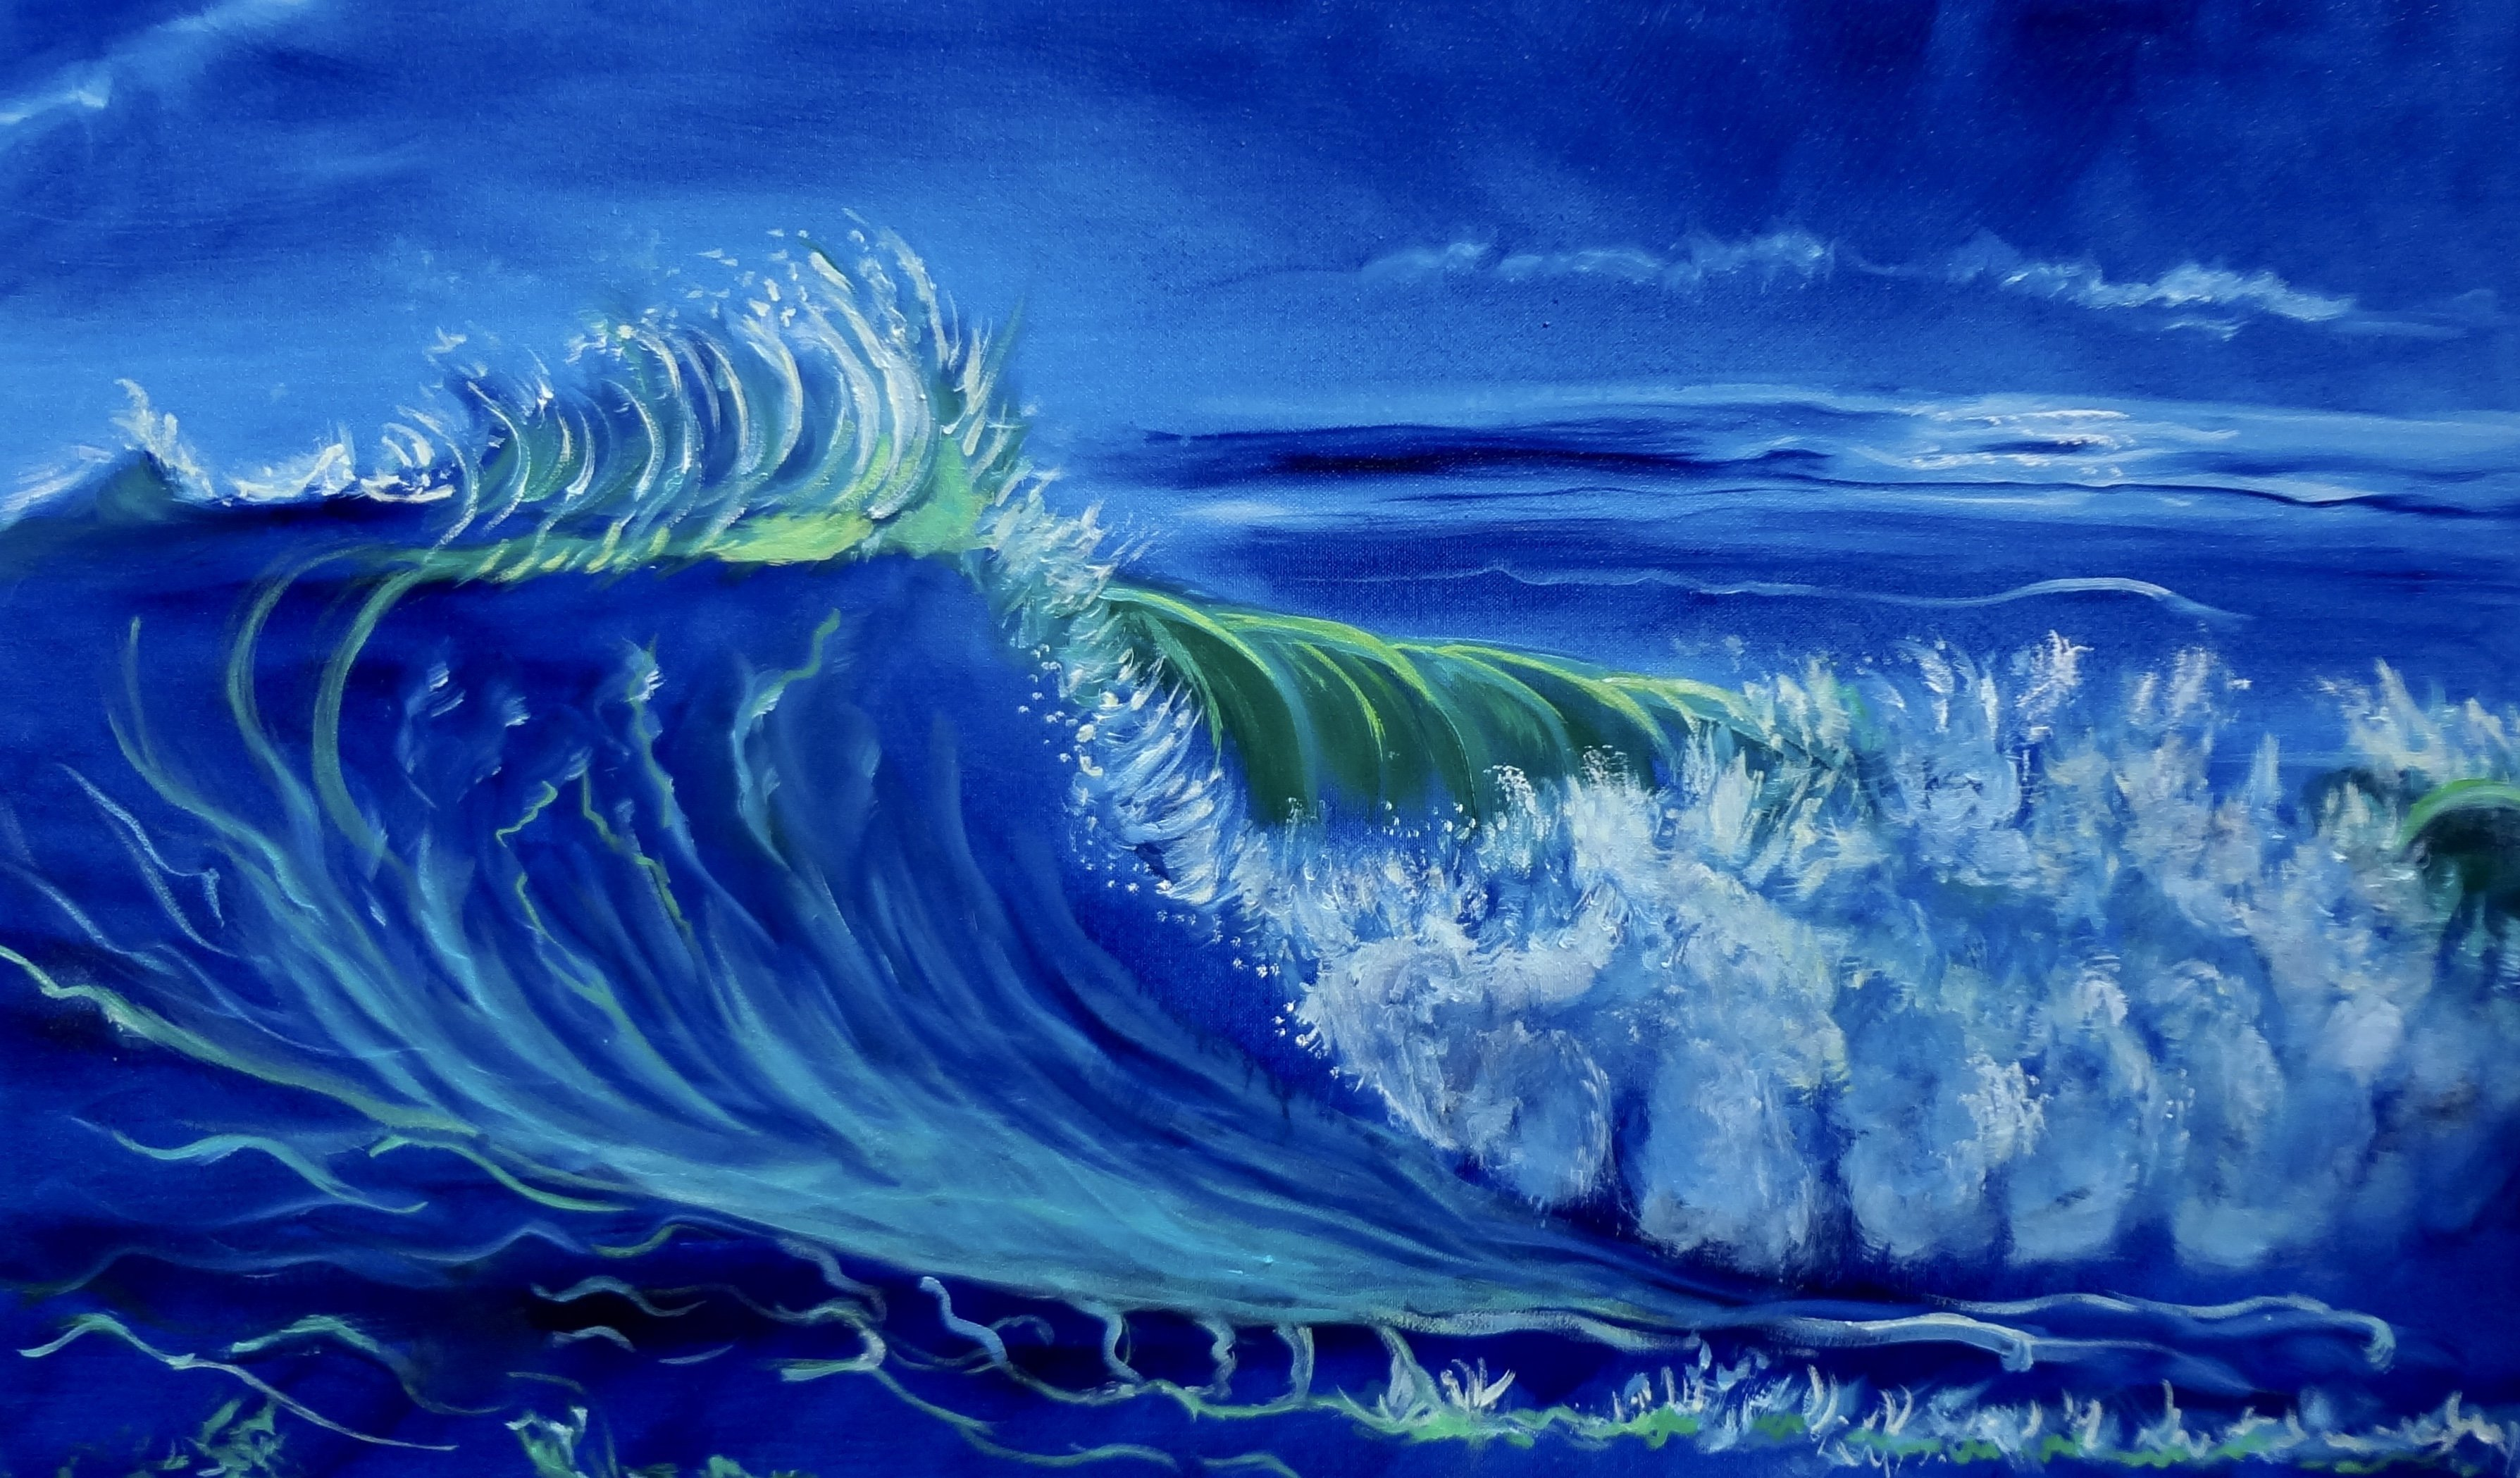 Jenny Jonah; North Shore Oahu Wave, 2019, Original Painting Oil, 32 x 18 inches. Artwork description: 241 Original oil painting on stretched canvas, unframed.  Splashing wves on the tropical shores of Oahu where millions of surfers converge every winter to watch the surfing competitions. ...